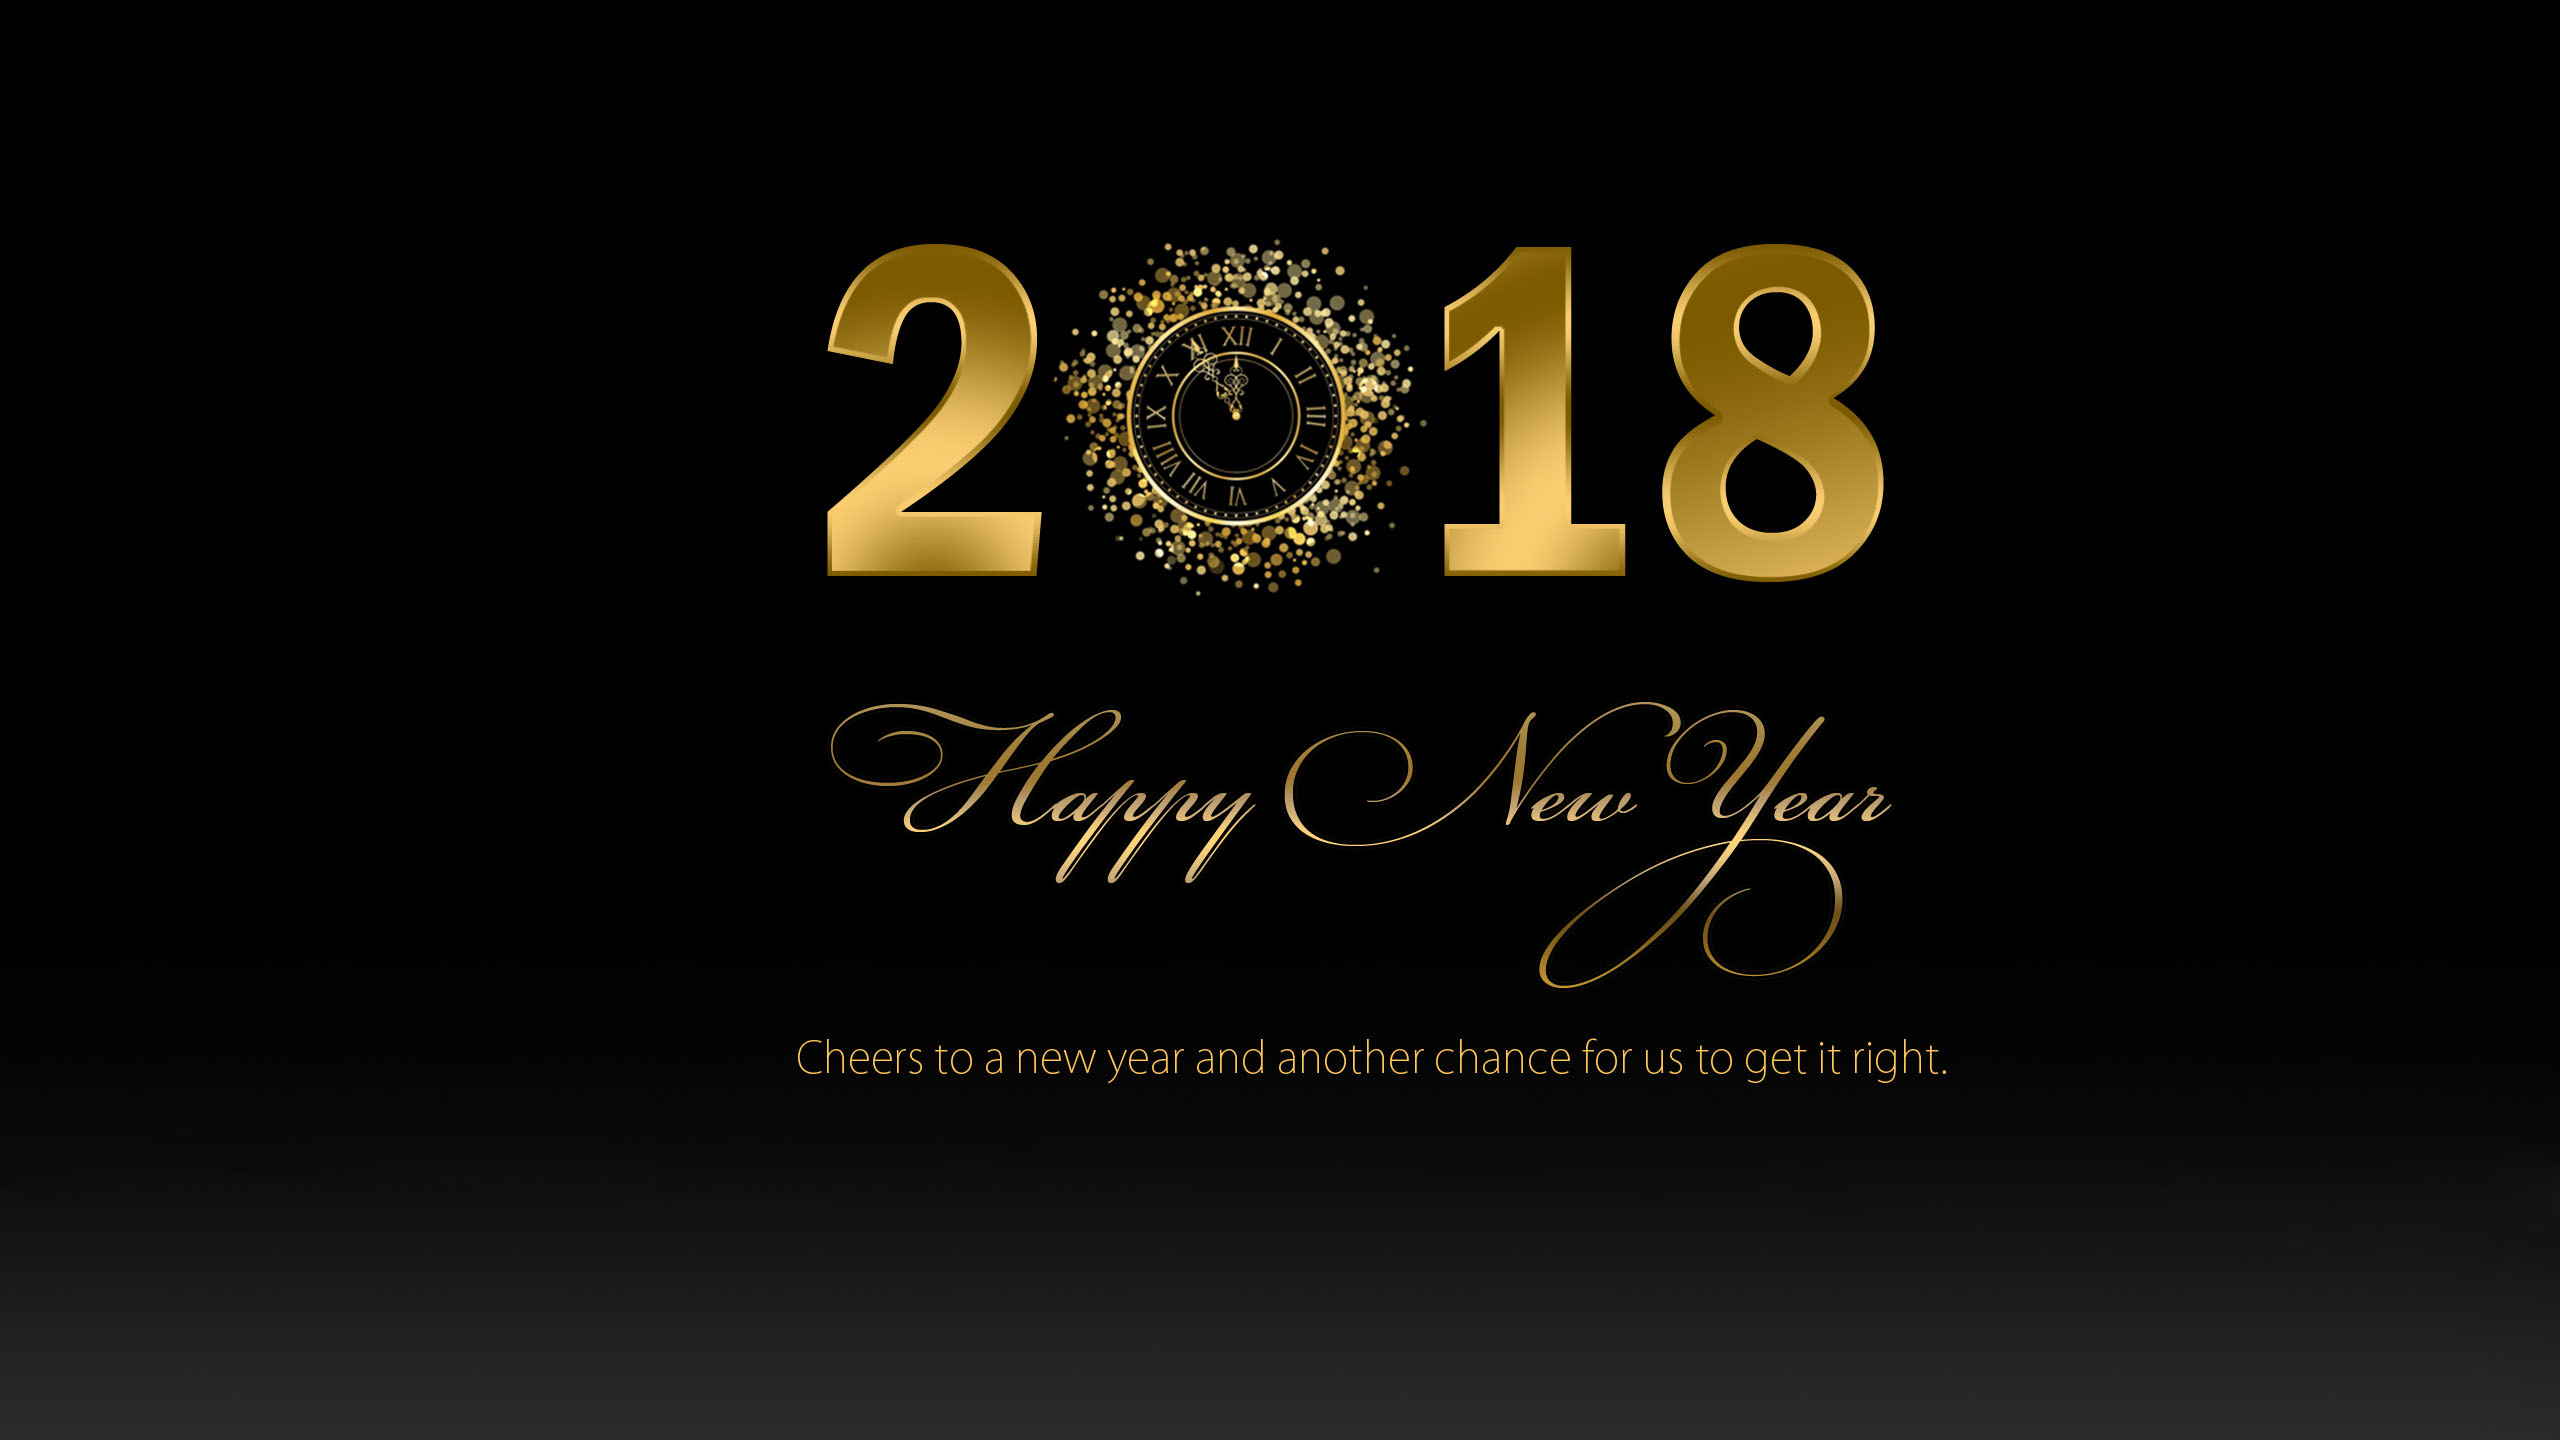 new year 2018 wallpapers id887346